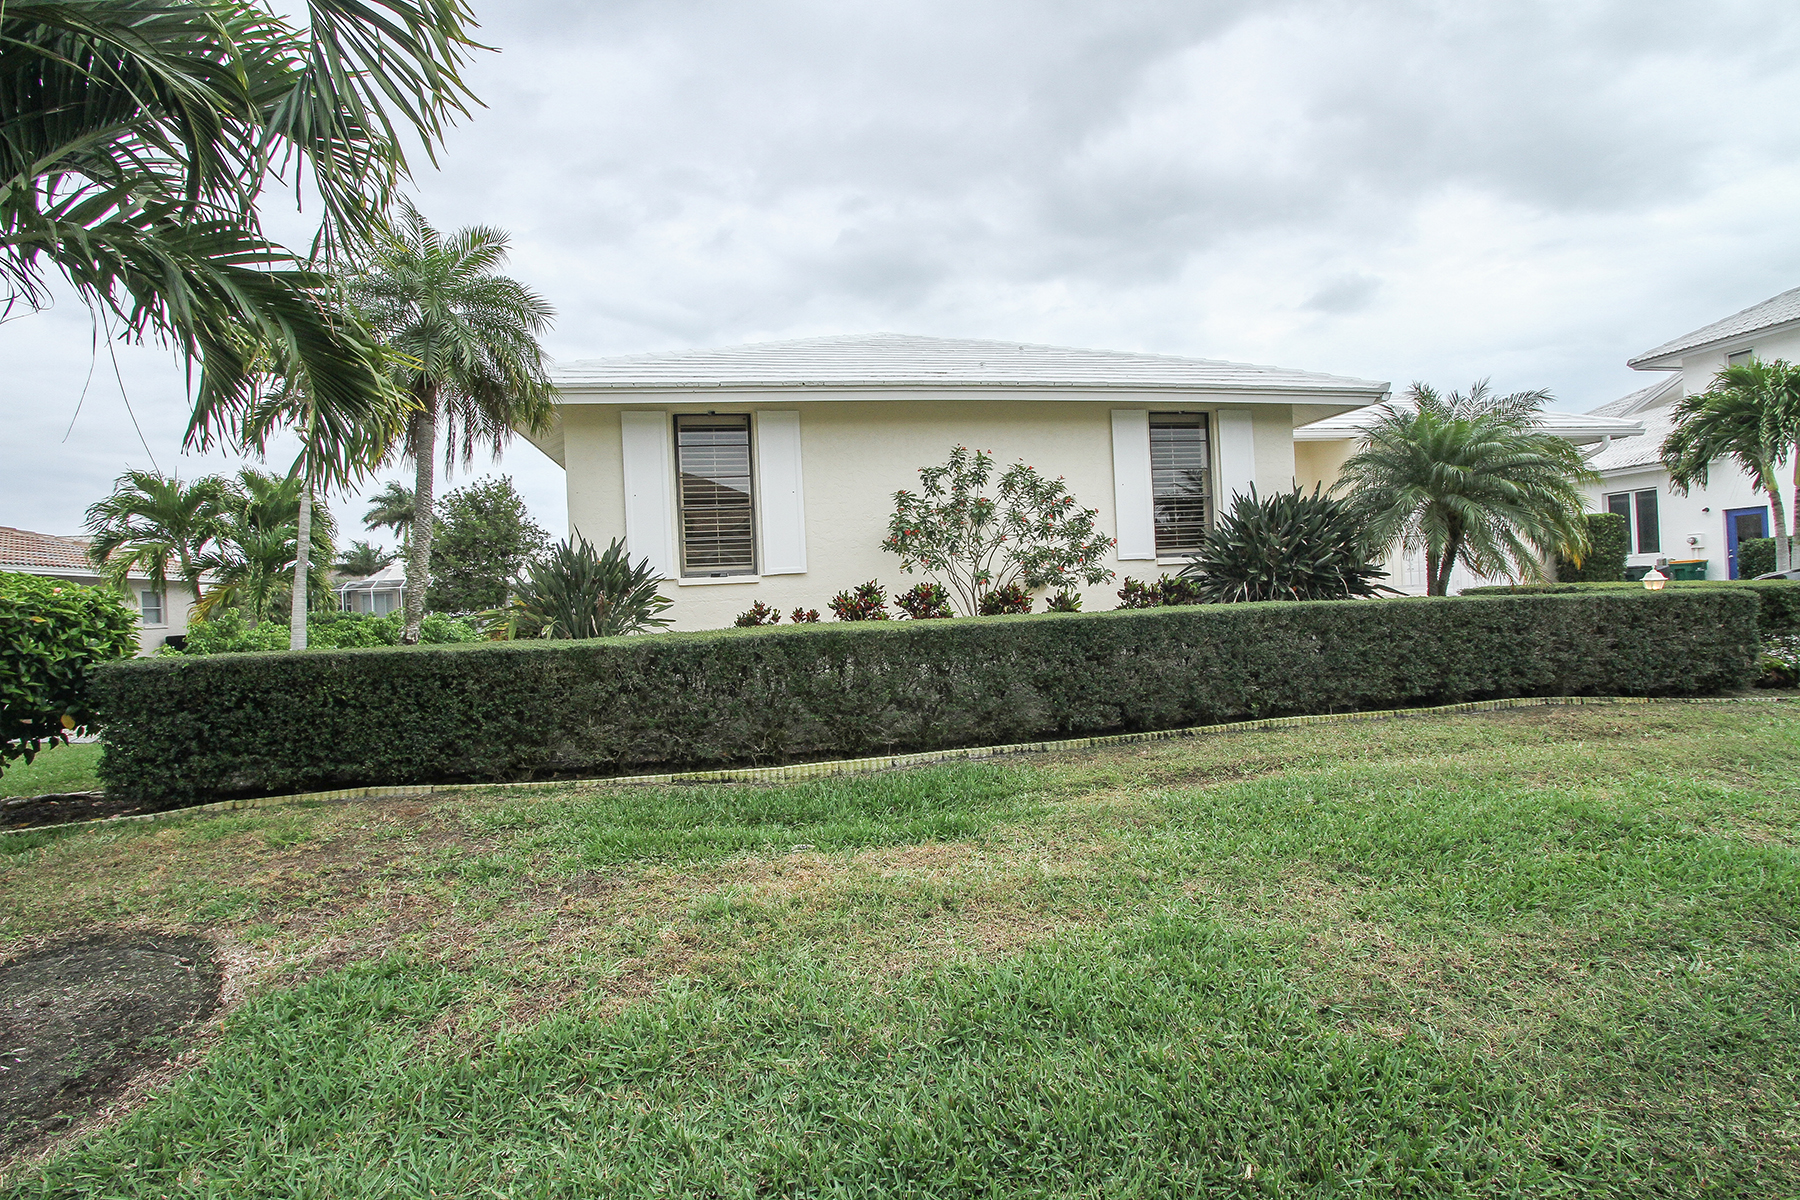 Single Family Home for Rent at MARCO BEACH 520 Tigertail Ct, Marco Island, Florida 34145 United States